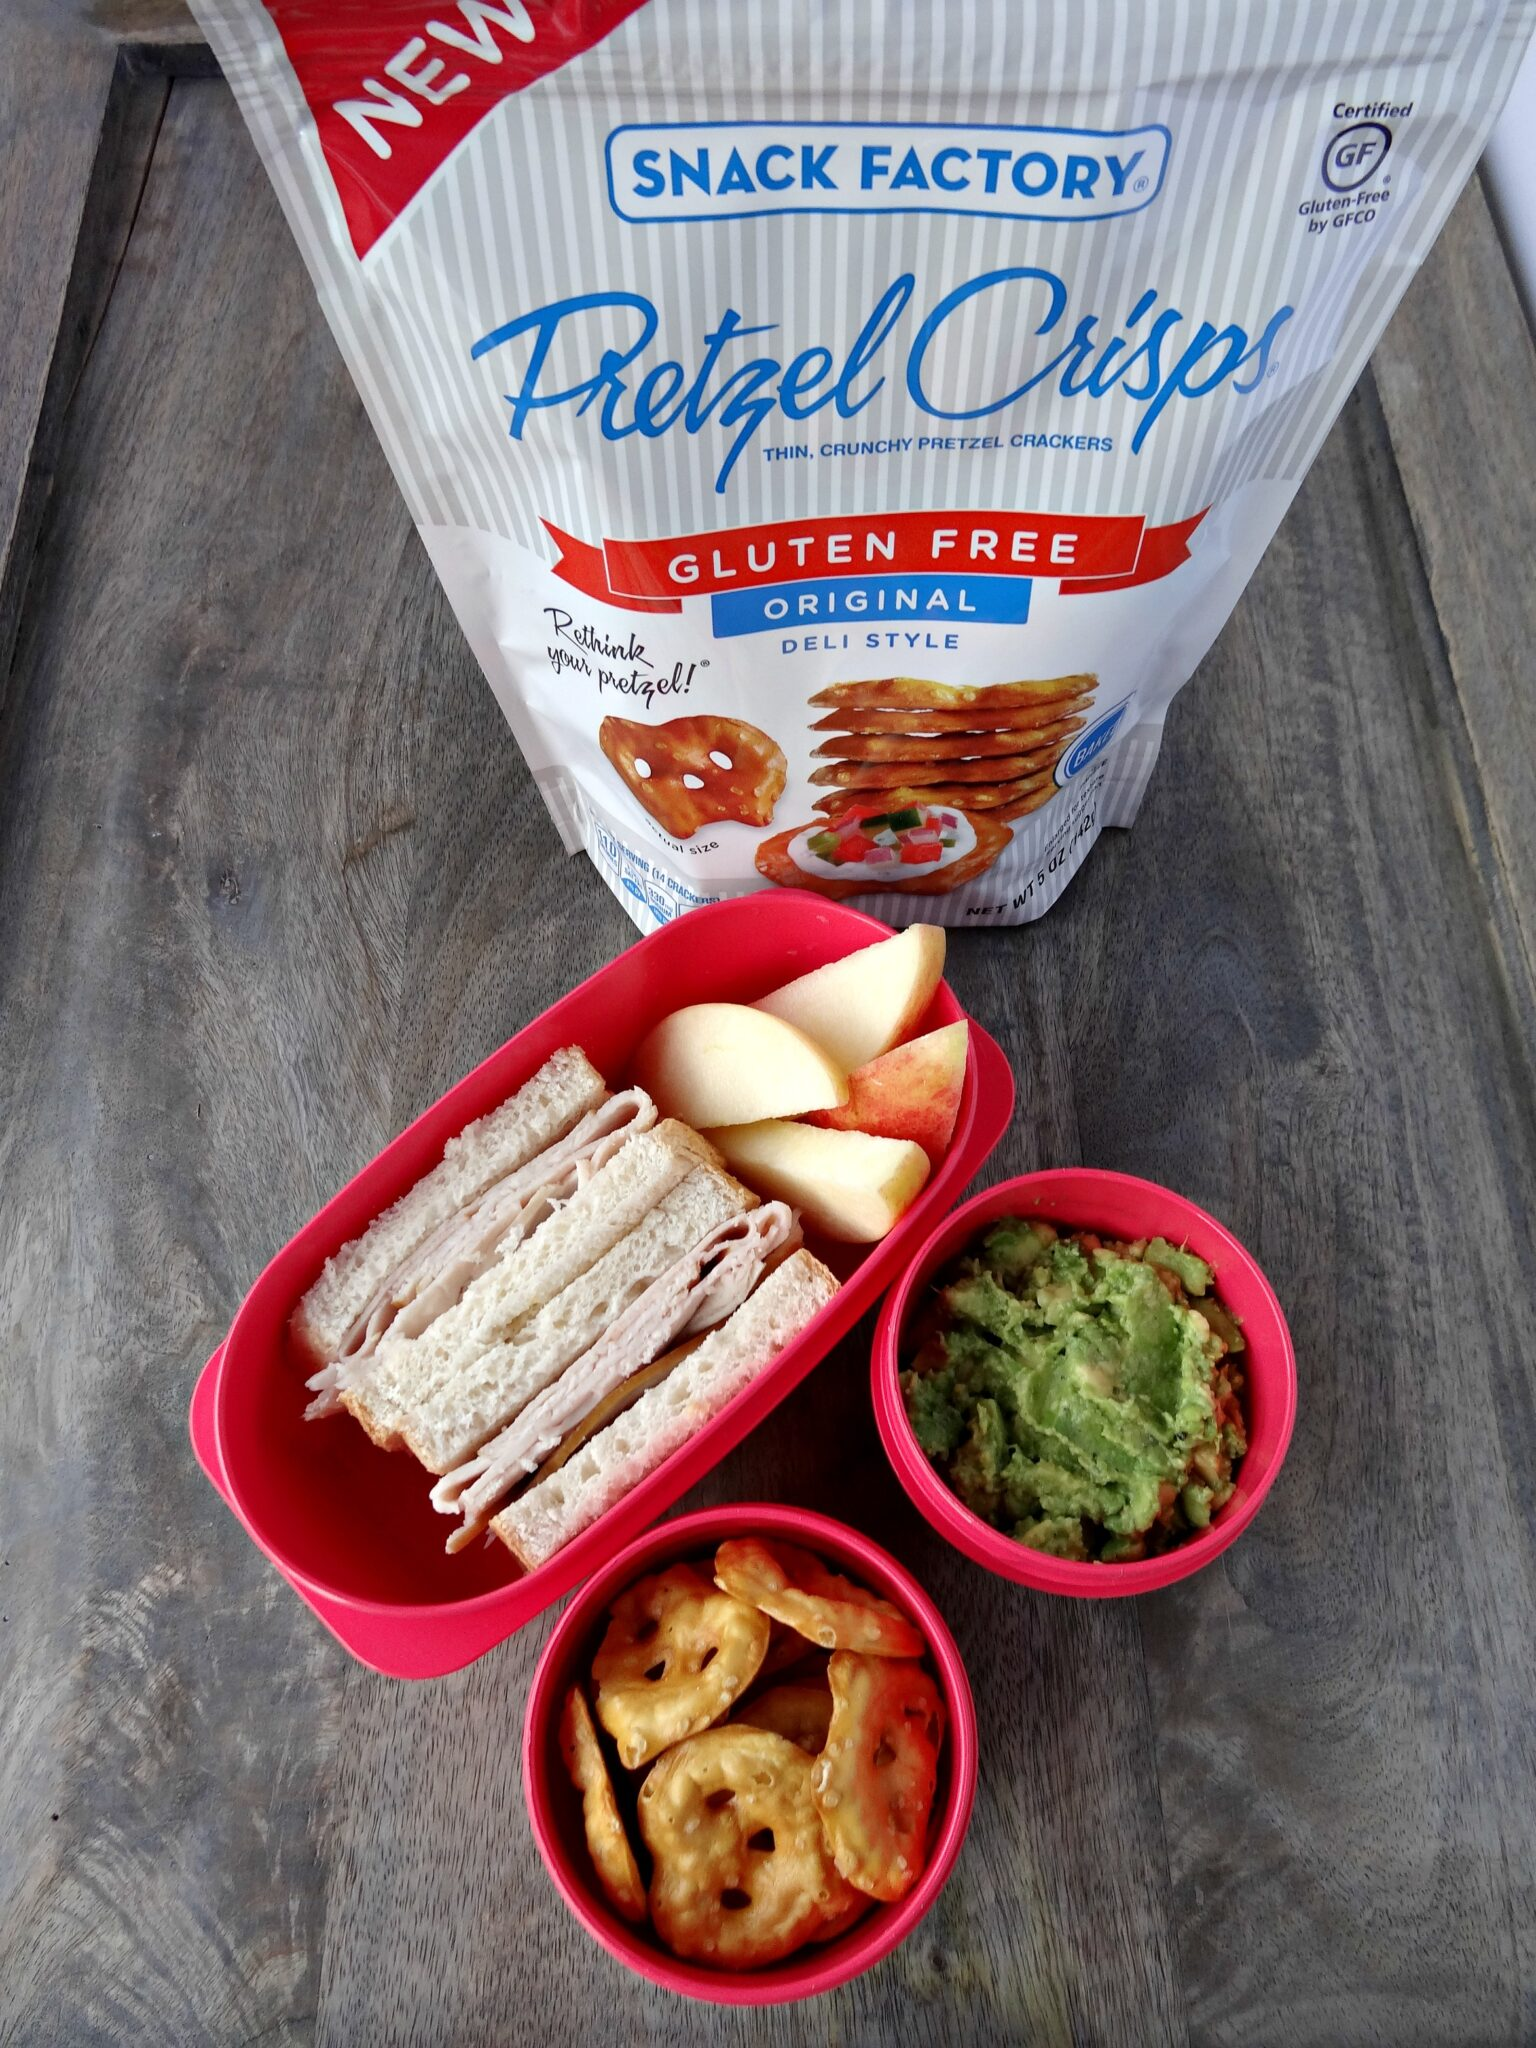 Snack Factory Gluten-Free Pretzels and Tortilla Chips